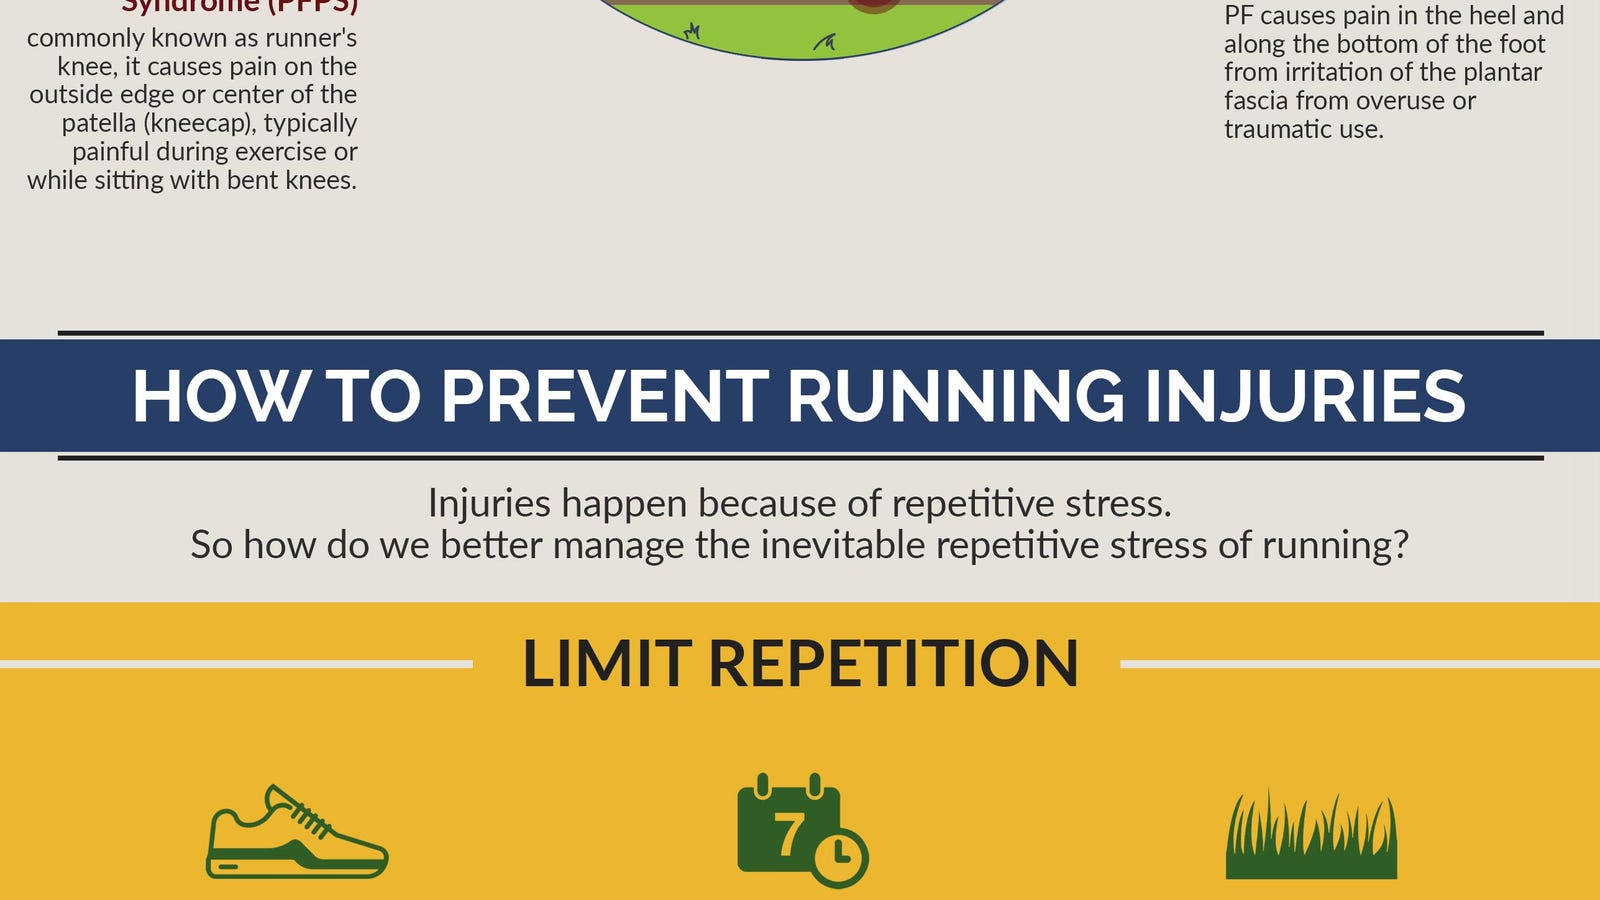 running and jogging injuries On the bench: how to keep d uring injury or rehabilitation periods, many runners are resigned to cross-training but which activities are best aqua-jogging water running or aqua-jogging is one of the most running-specific cross-training options there is.